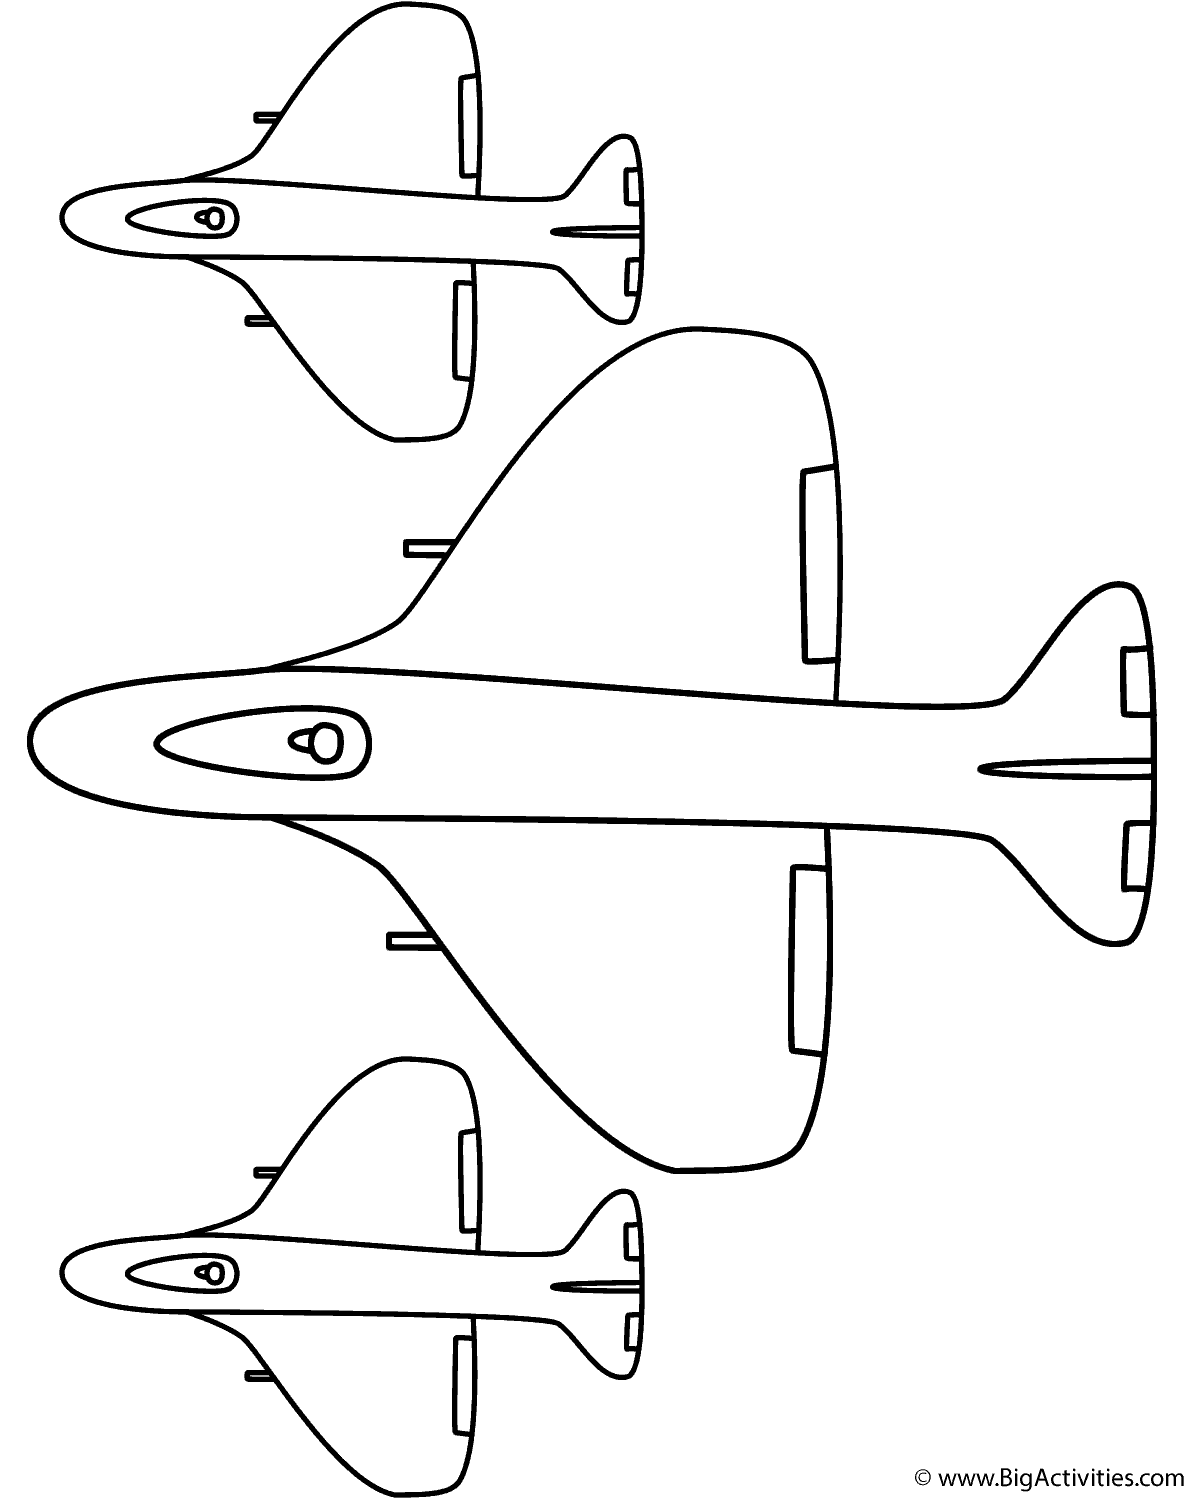 fighter airplane with side planes coloring page military